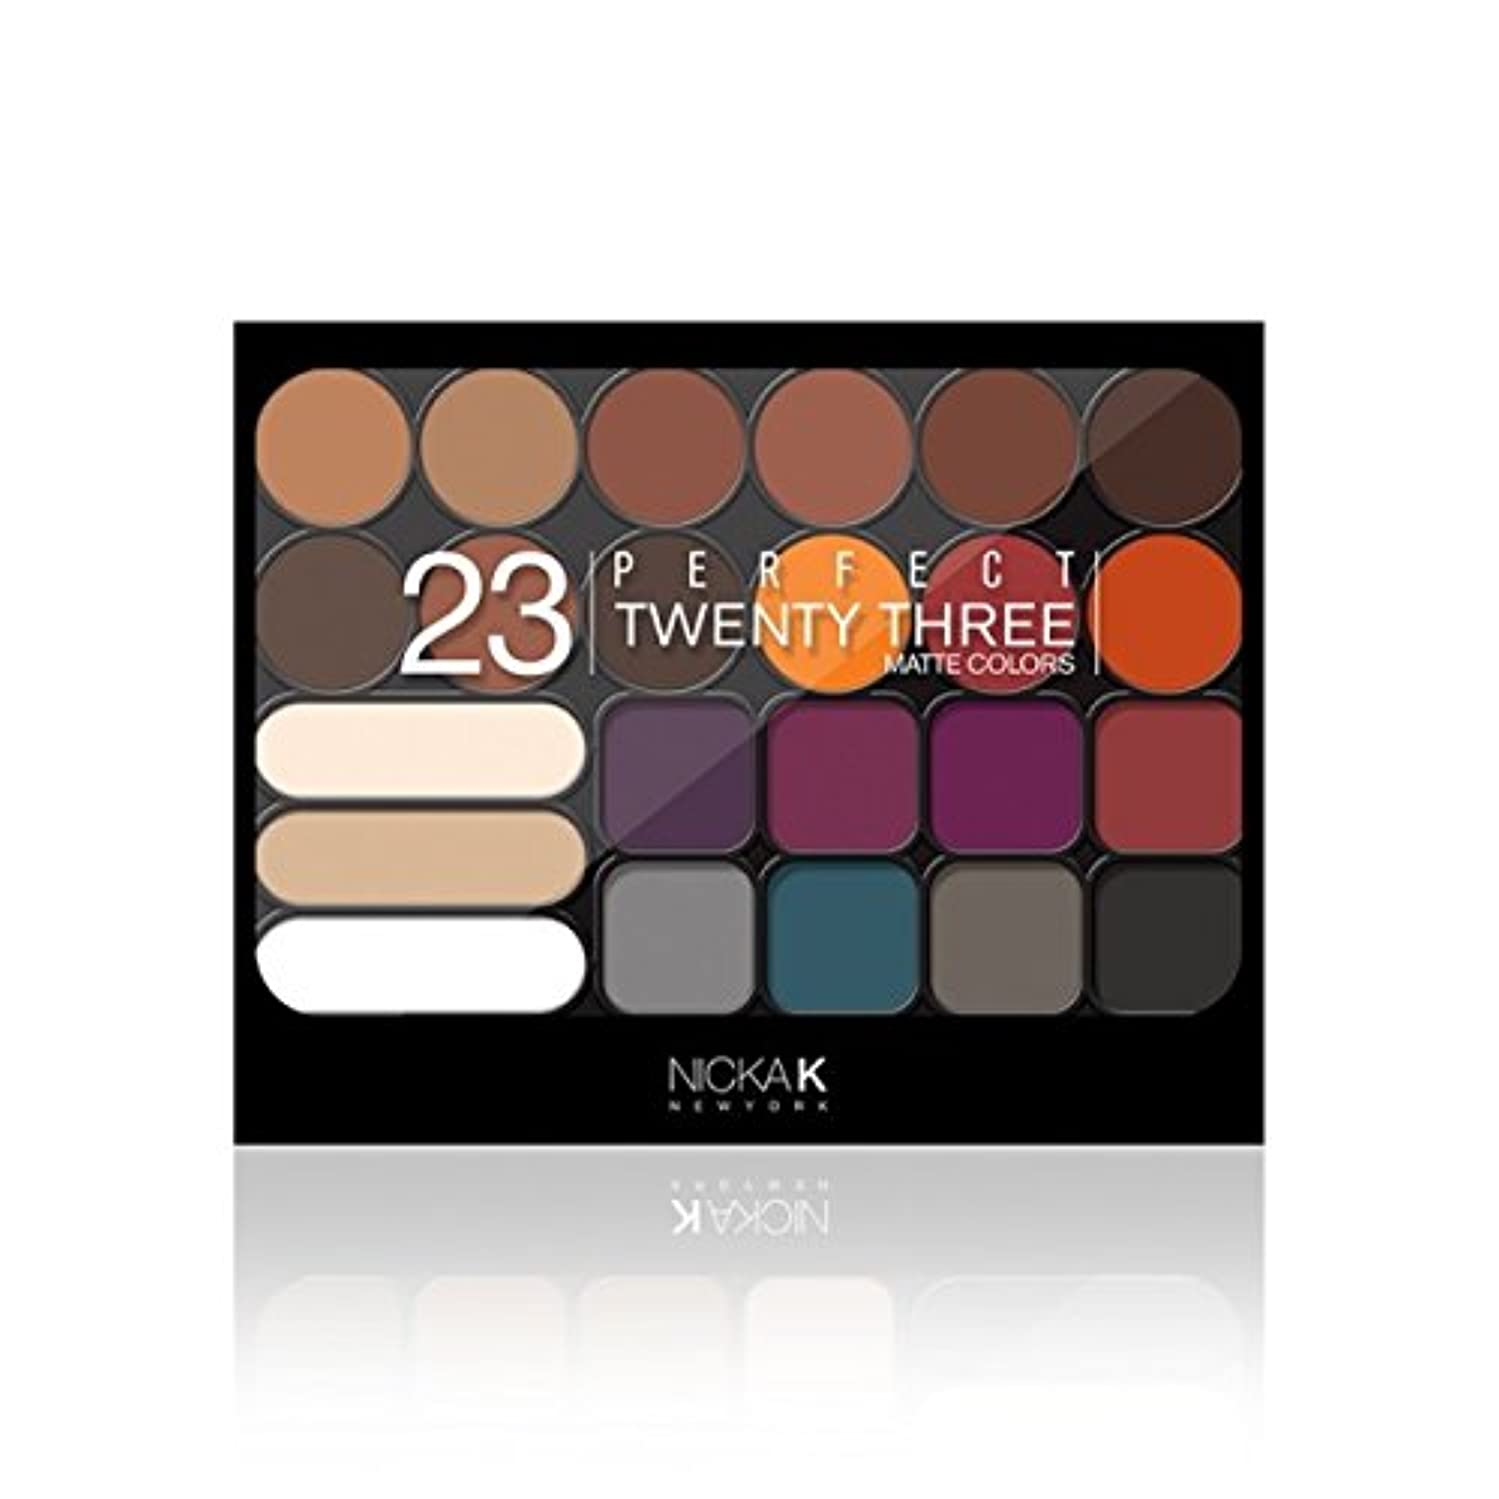 きらめき転用励起(6 Pack) NICKA K Perfect Twenty-Three Colors (Matte) Eyeshadow Palette 02 (AP9B) (並行輸入品)